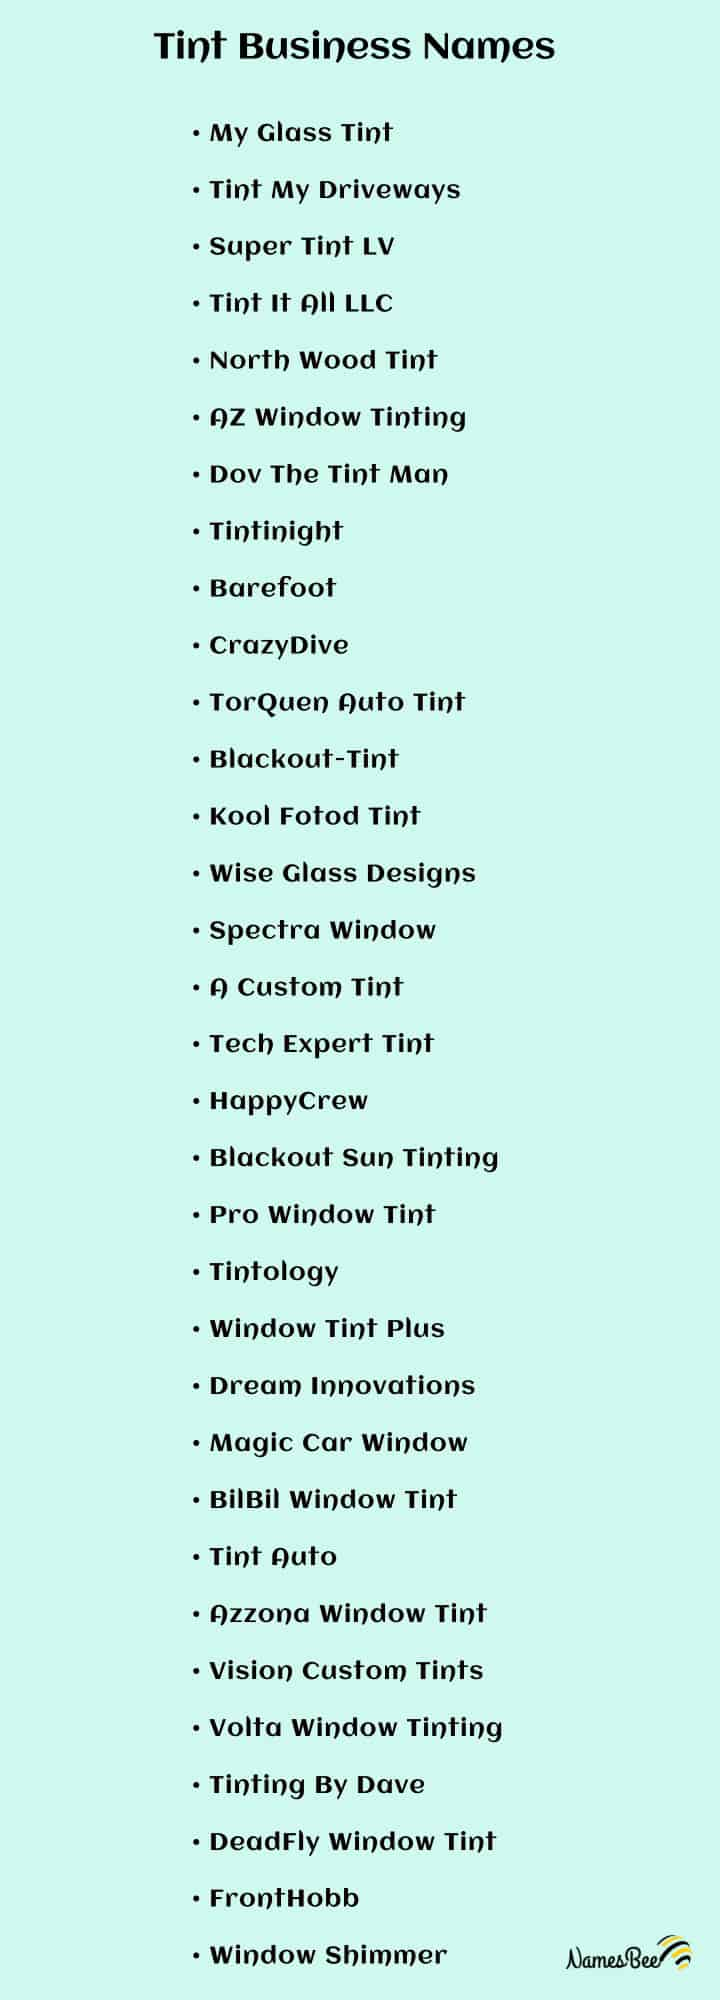 window tint business names